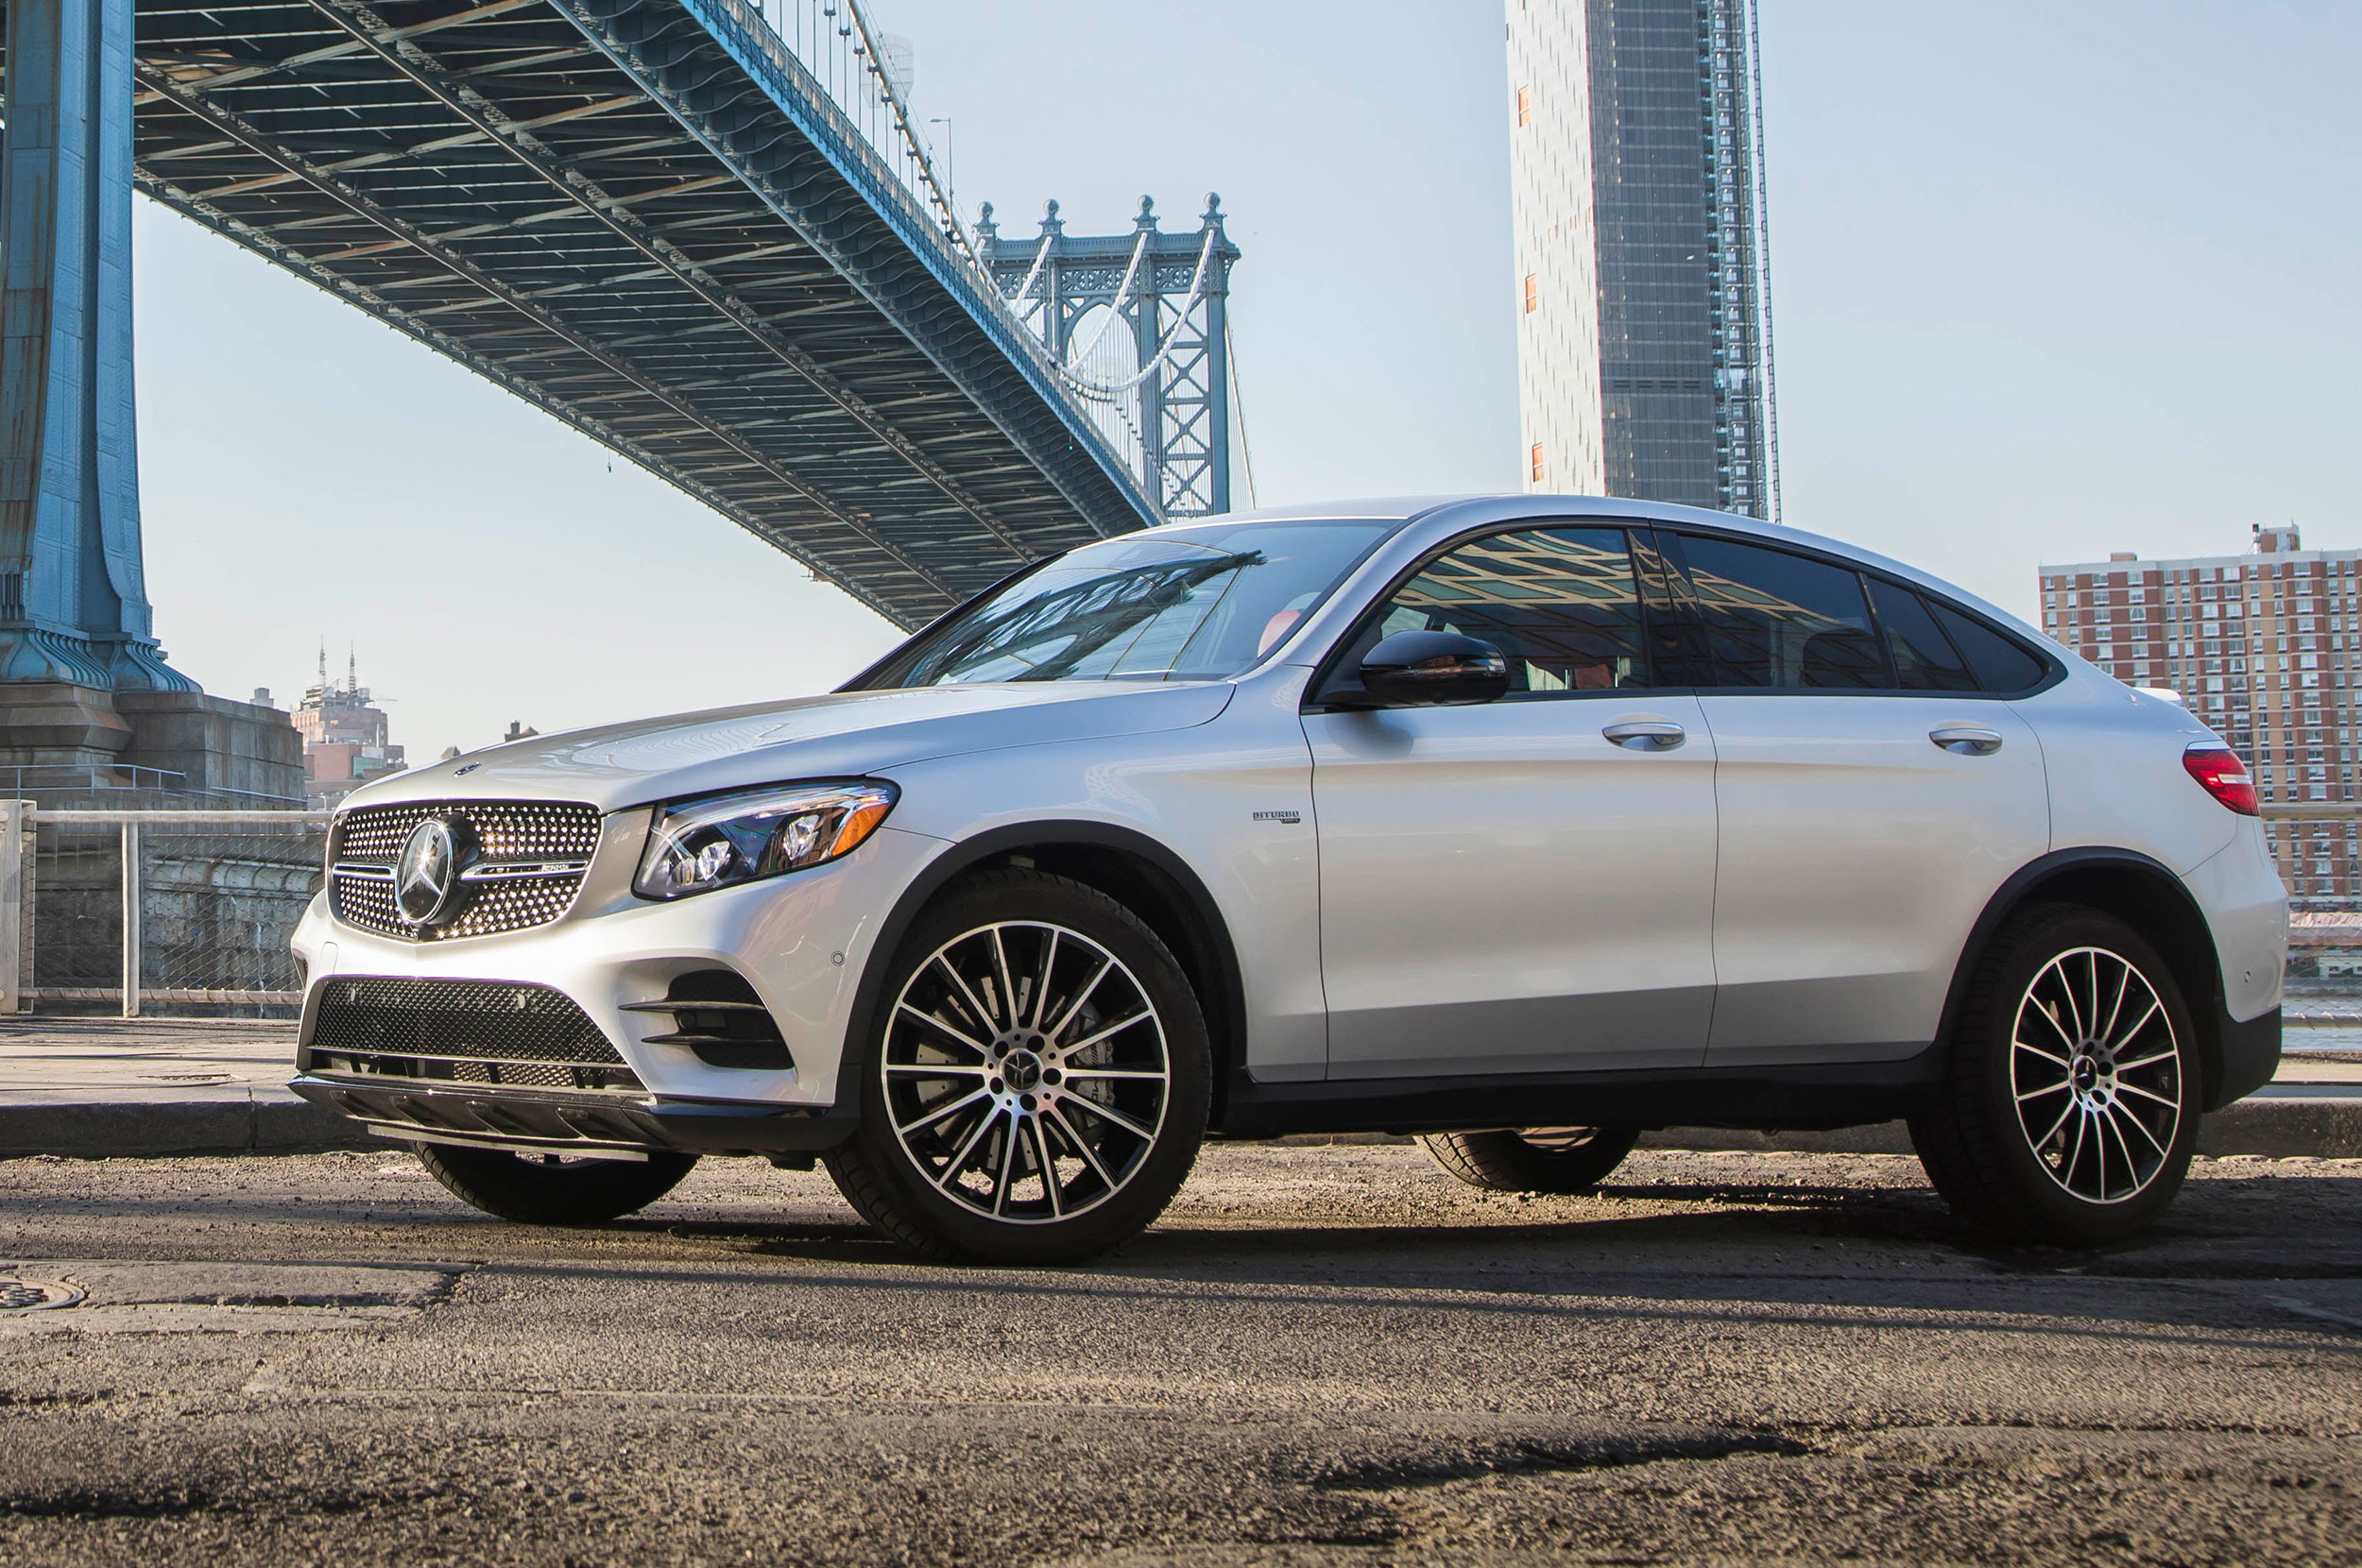 2019 mercedes benz glc class glc300 4matic overview msn. Black Bedroom Furniture Sets. Home Design Ideas